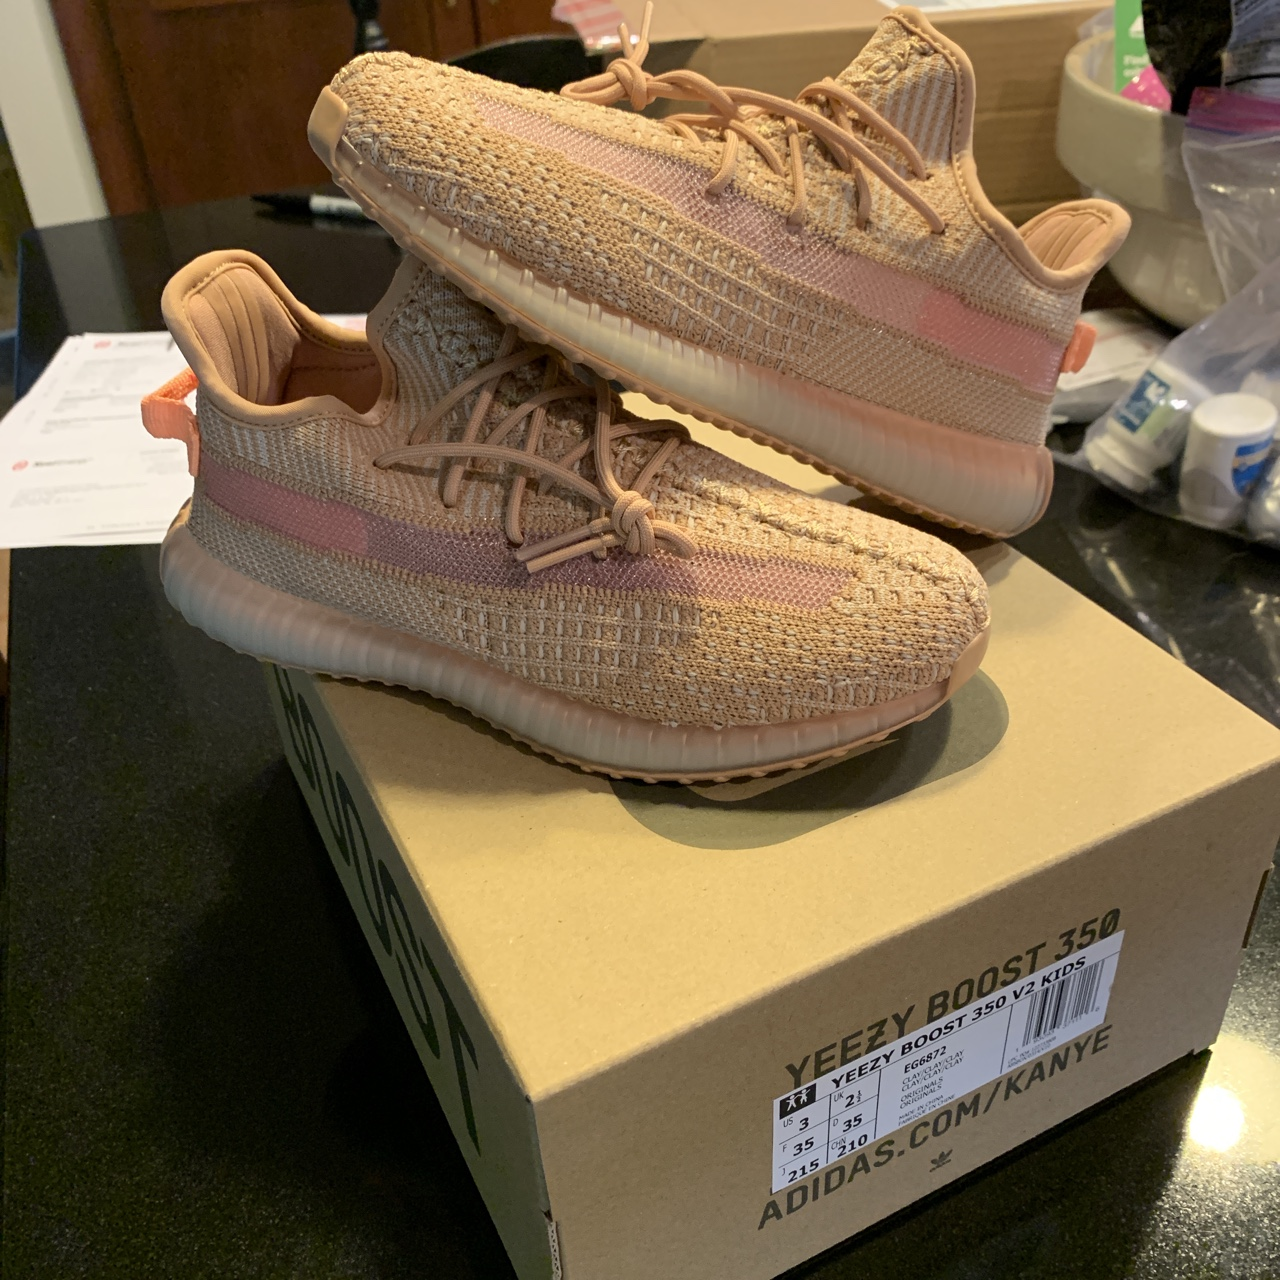 wholesale dealer 3e576 eaee6 Yeezy Boost 350 V2 Clay Kids (PS) size 3 - Depop